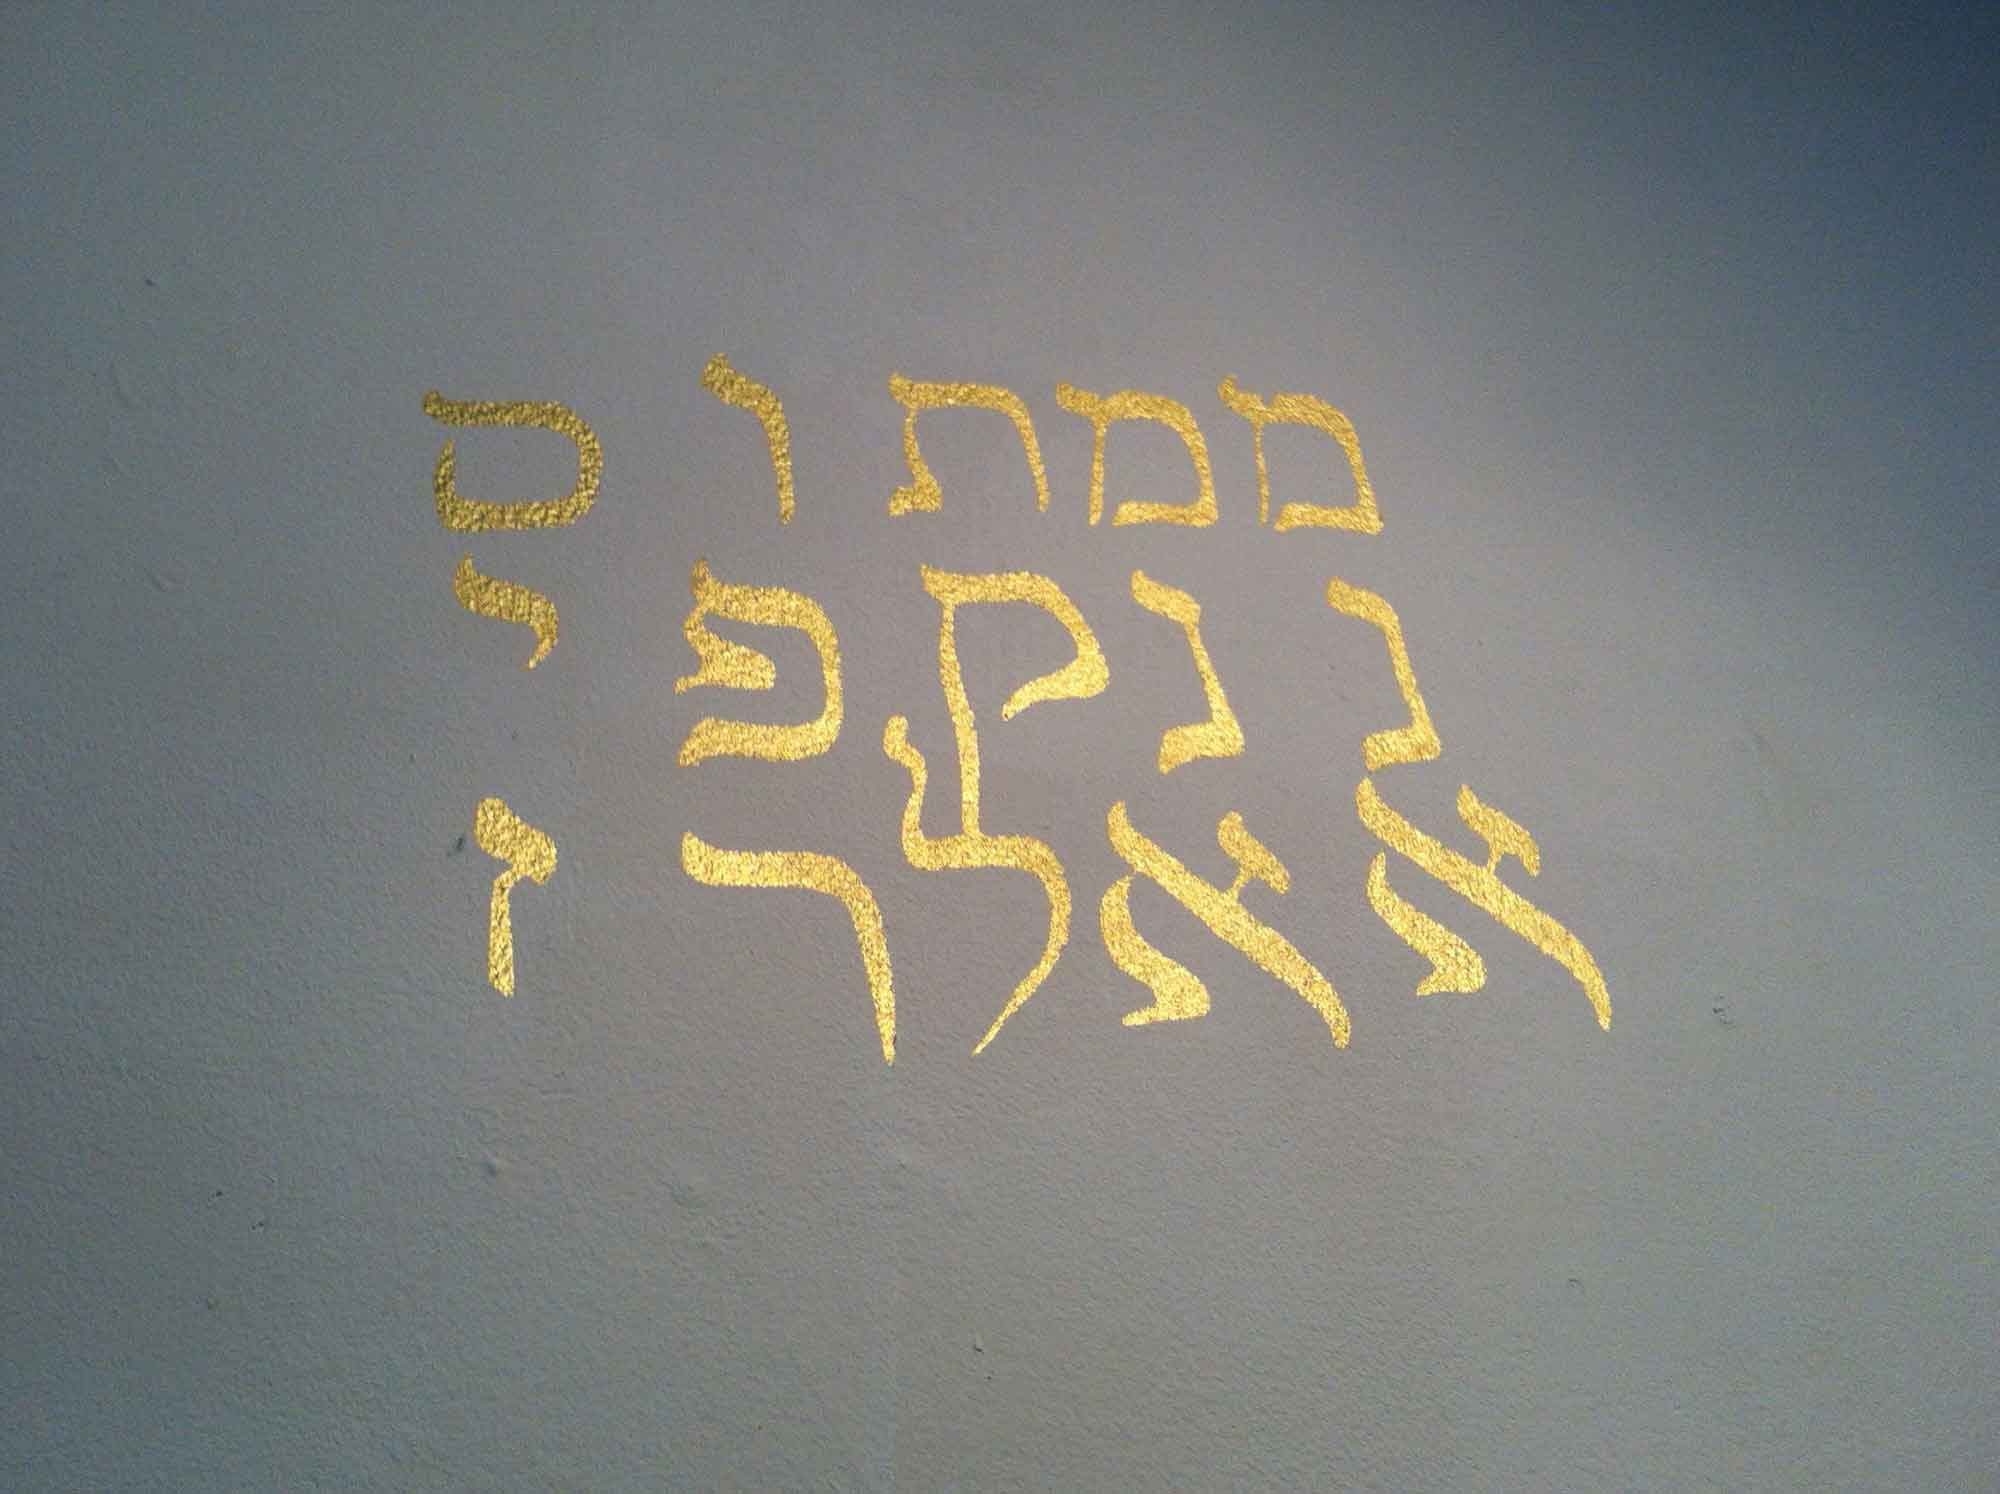 Installation view 4 / The Writing on the Wall, after Rembrandt (2014)